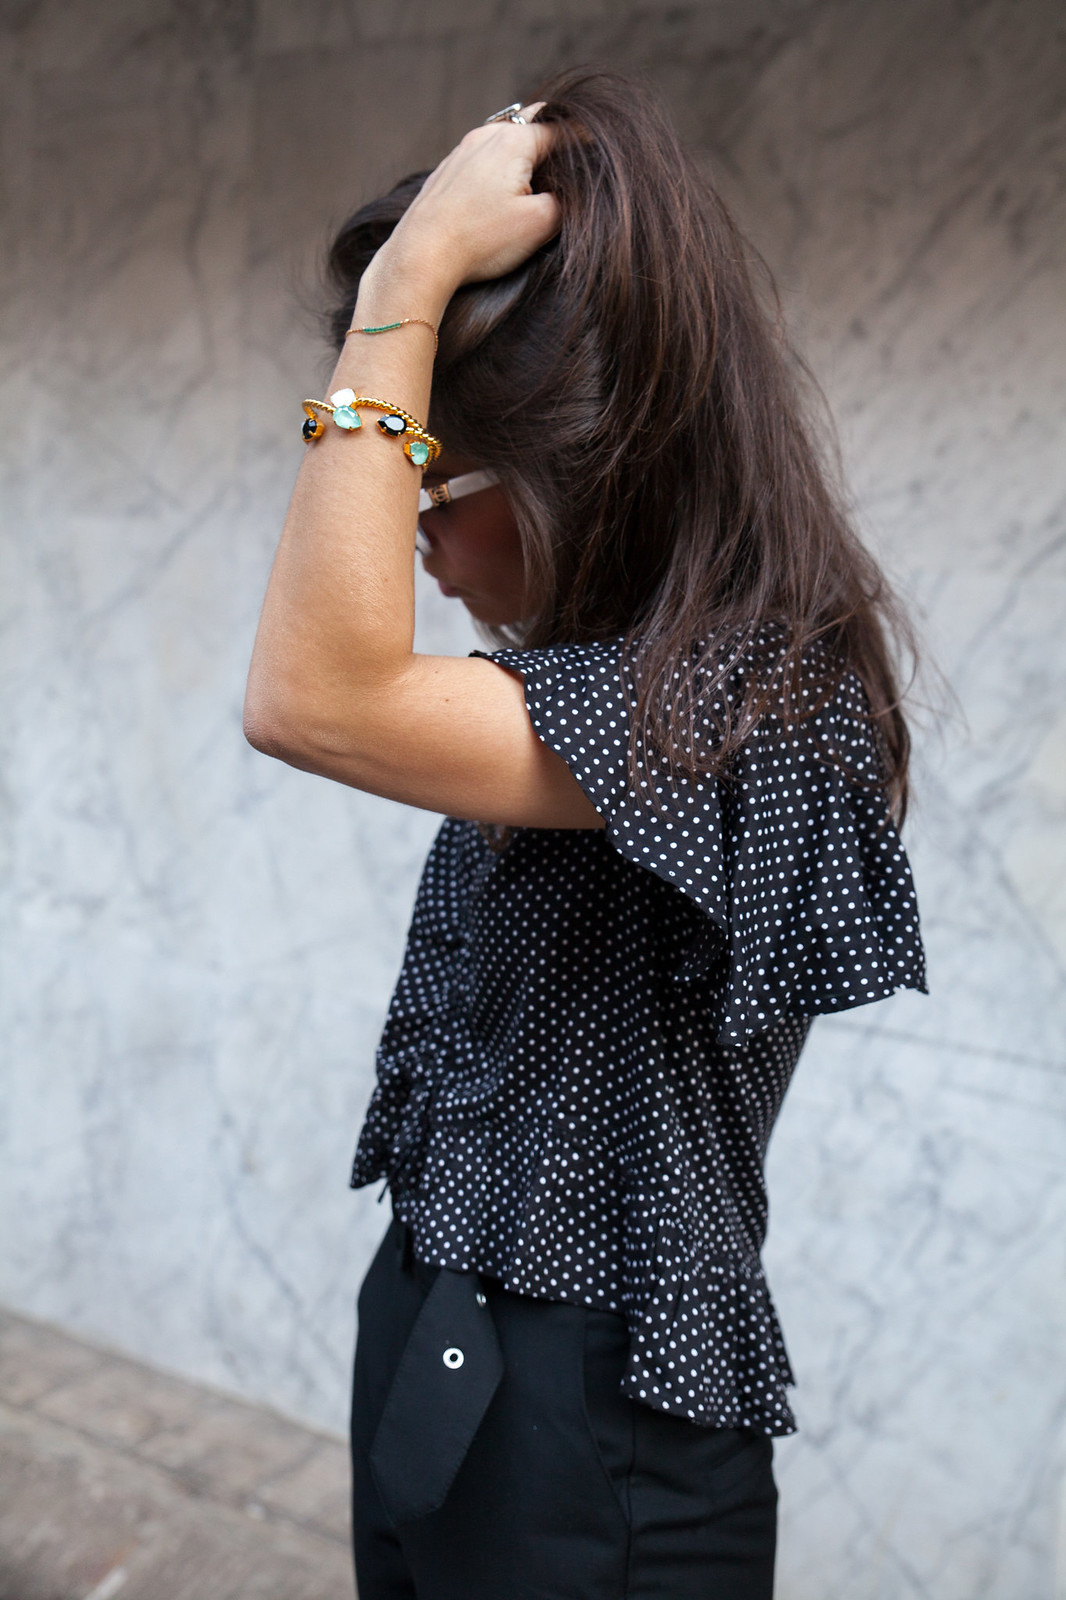 03_NA-KD_DOTS_BLACK_OUTFIT_THEGUESTGIRL_INFLUENCER_SPAIN